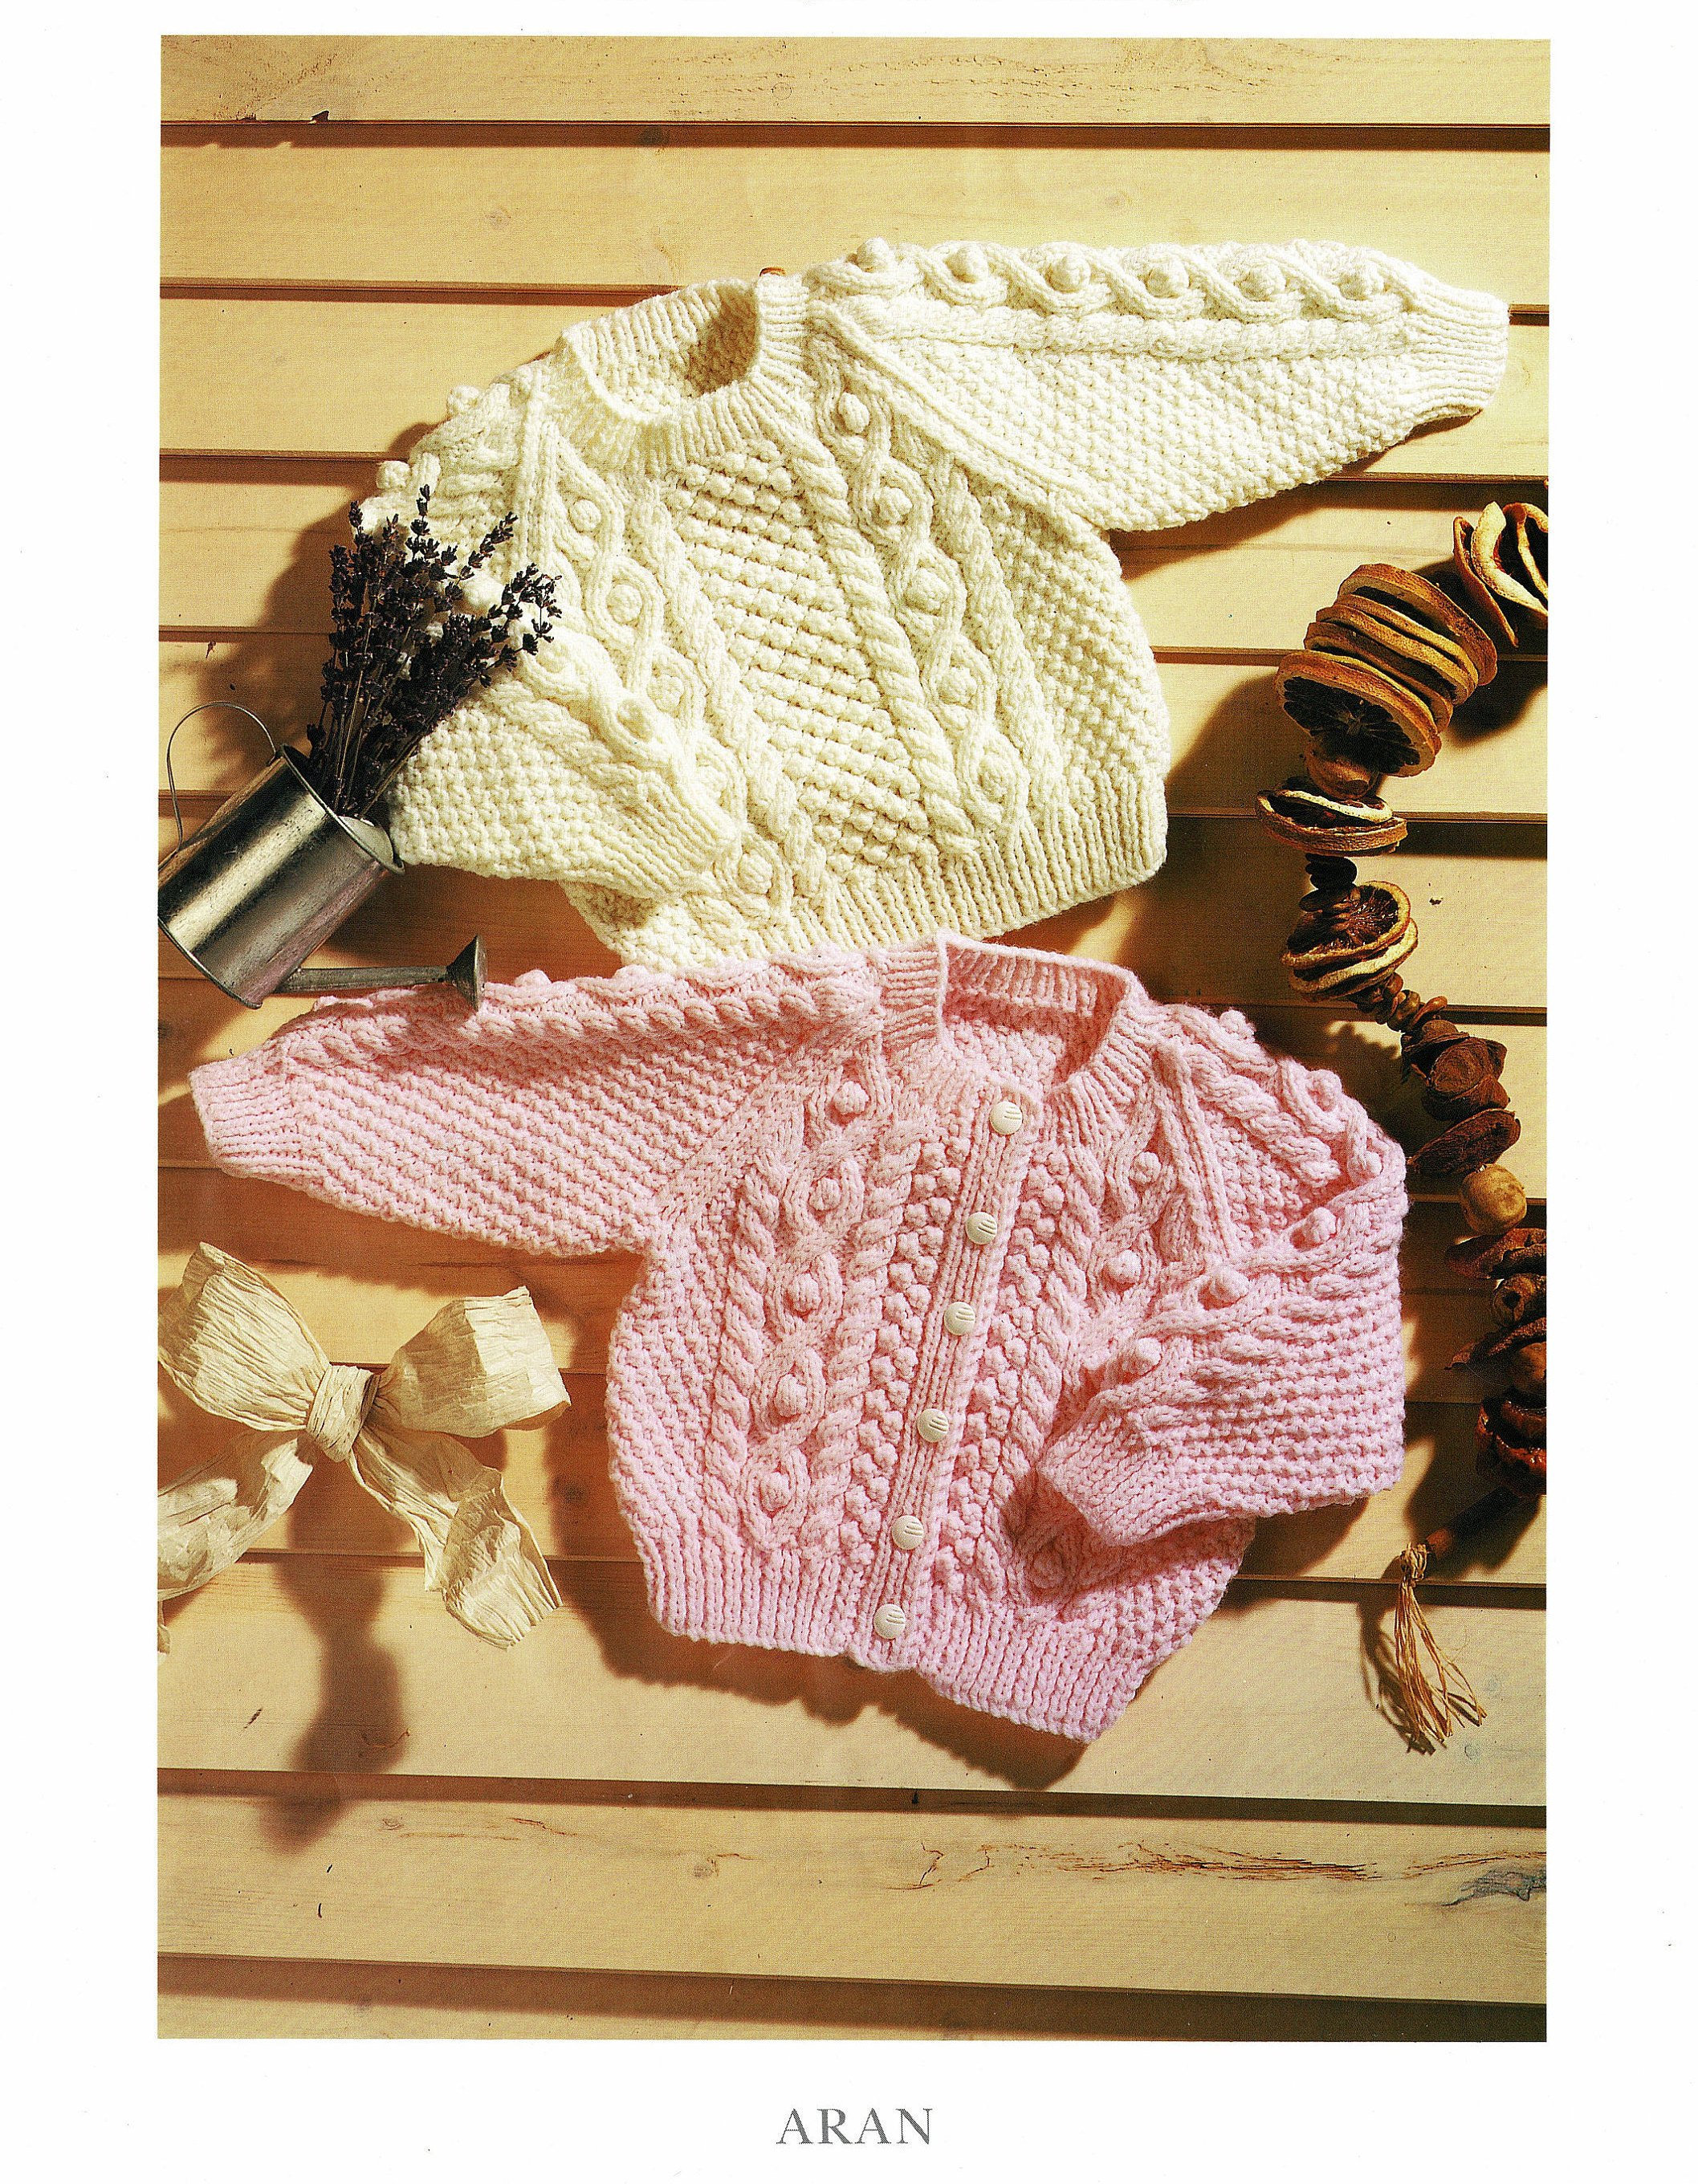 d4ceef5f1c31 Babies and Toddlers Raglan Sleeved Aran Cardigan and Sweater